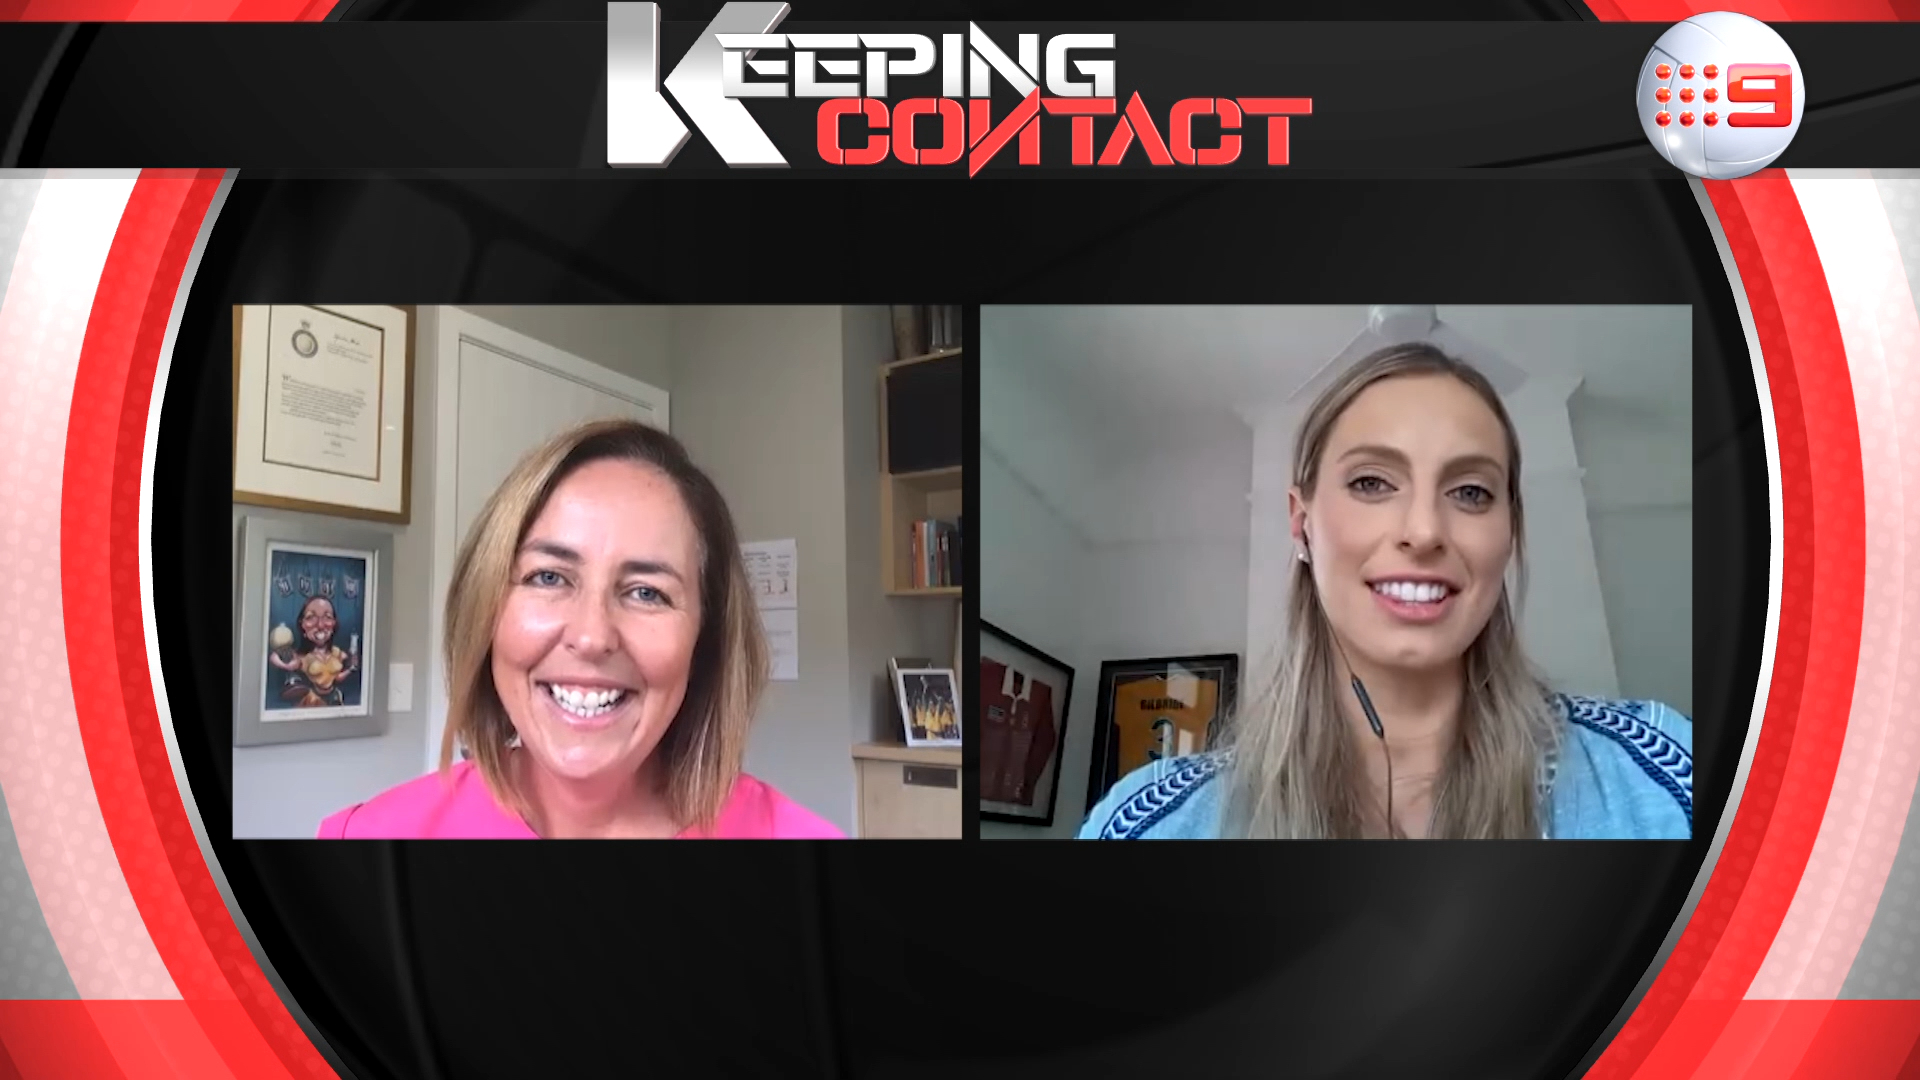 Episode 1: Keeping Contact